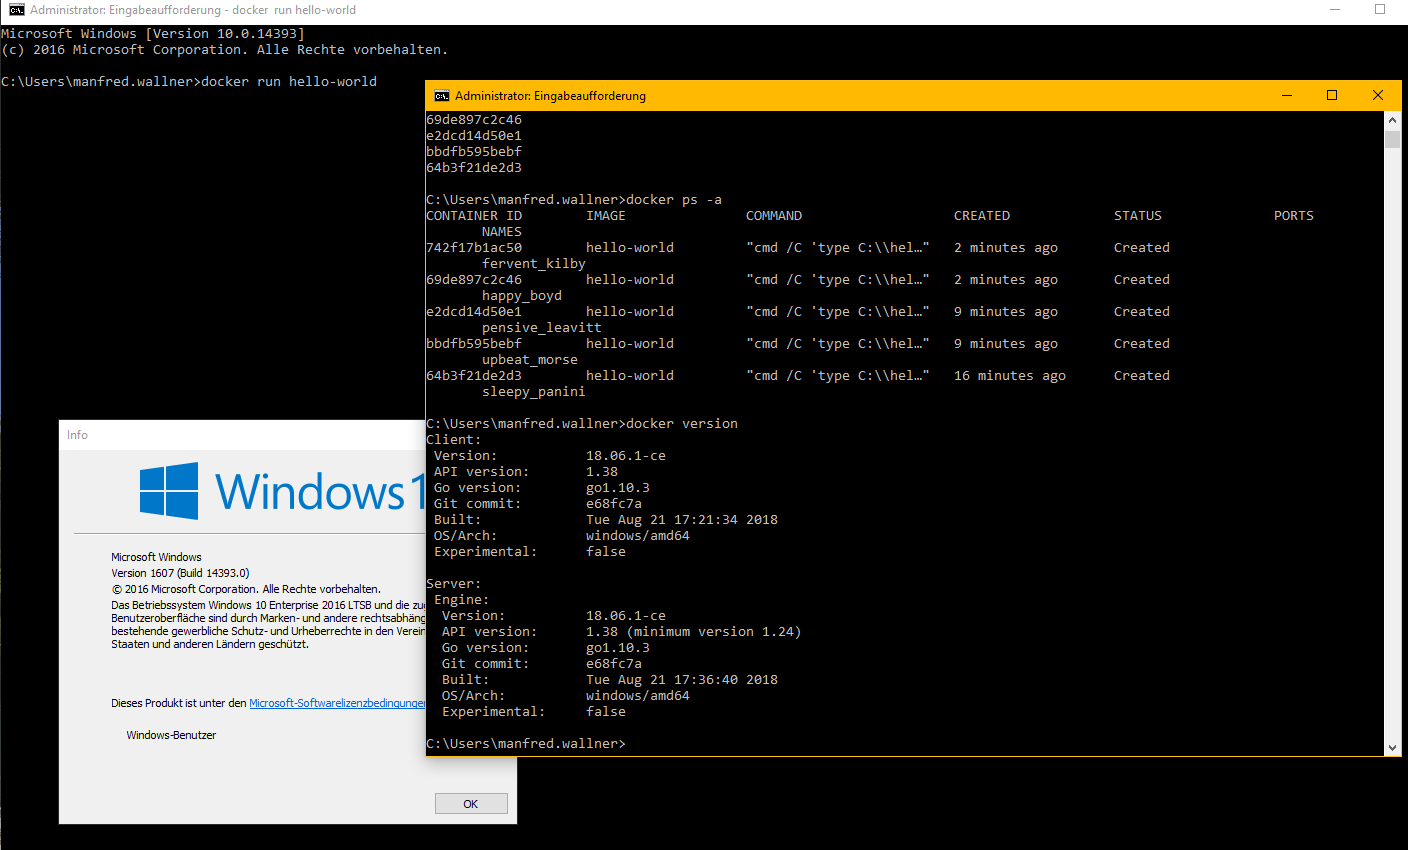 unable to start container on Win 10 LTSB 1607 · Issue #2842 · docker